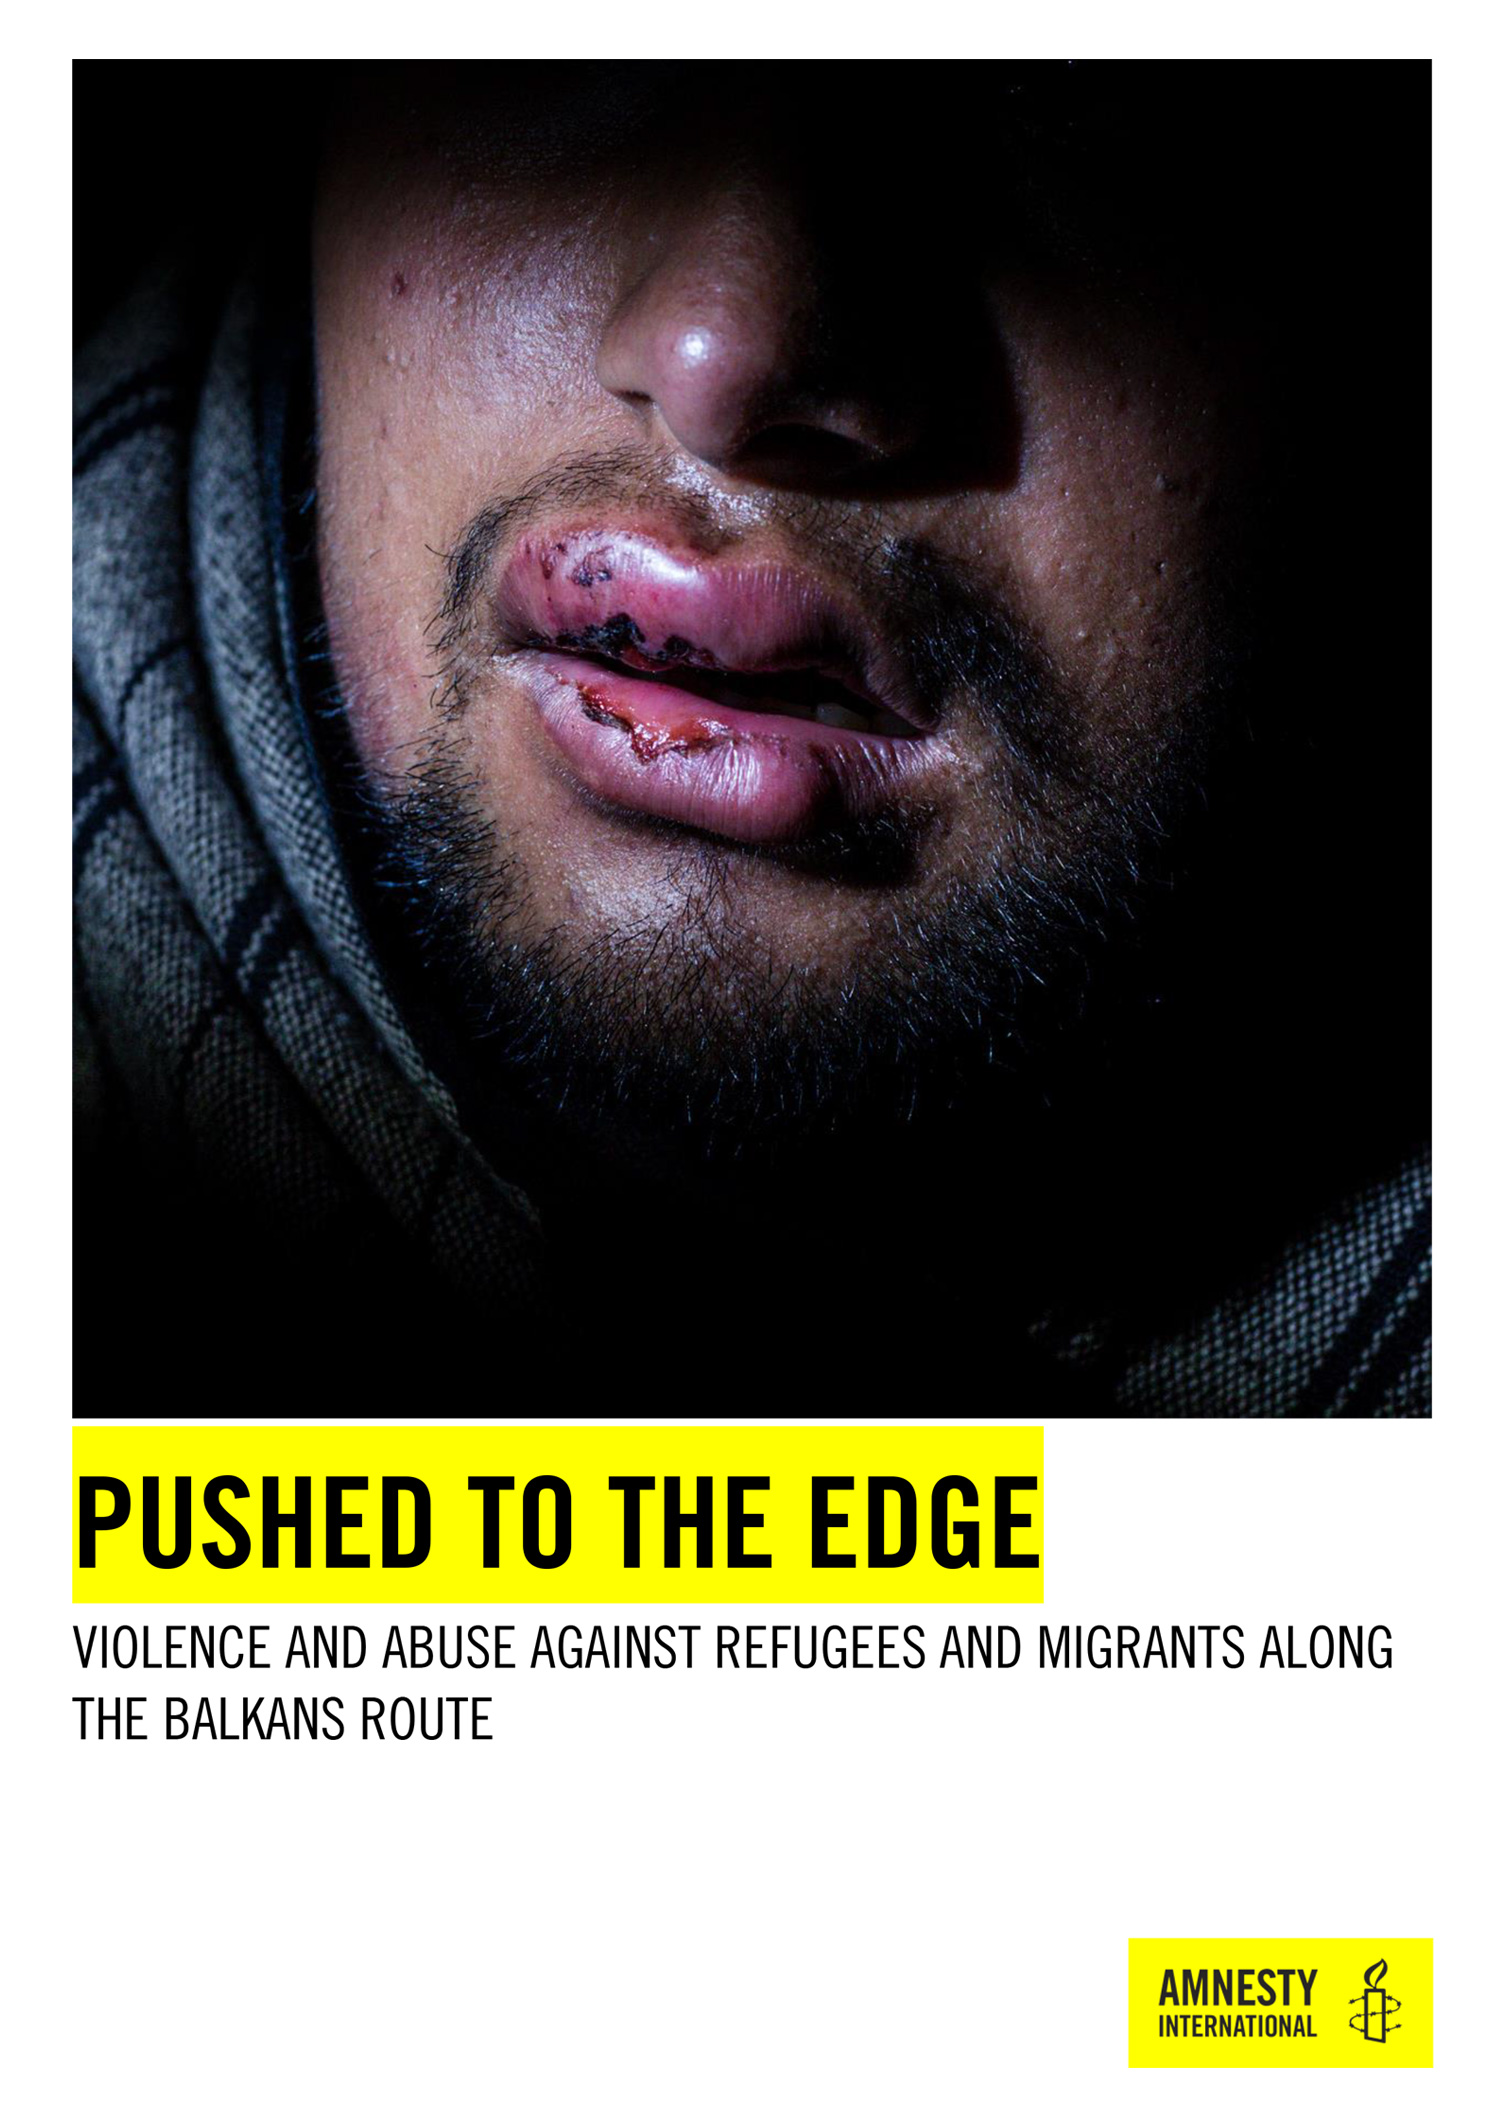 Refugee Rights Europe Pushbacks Balkan Route Pushed To The Edge Amnesty International